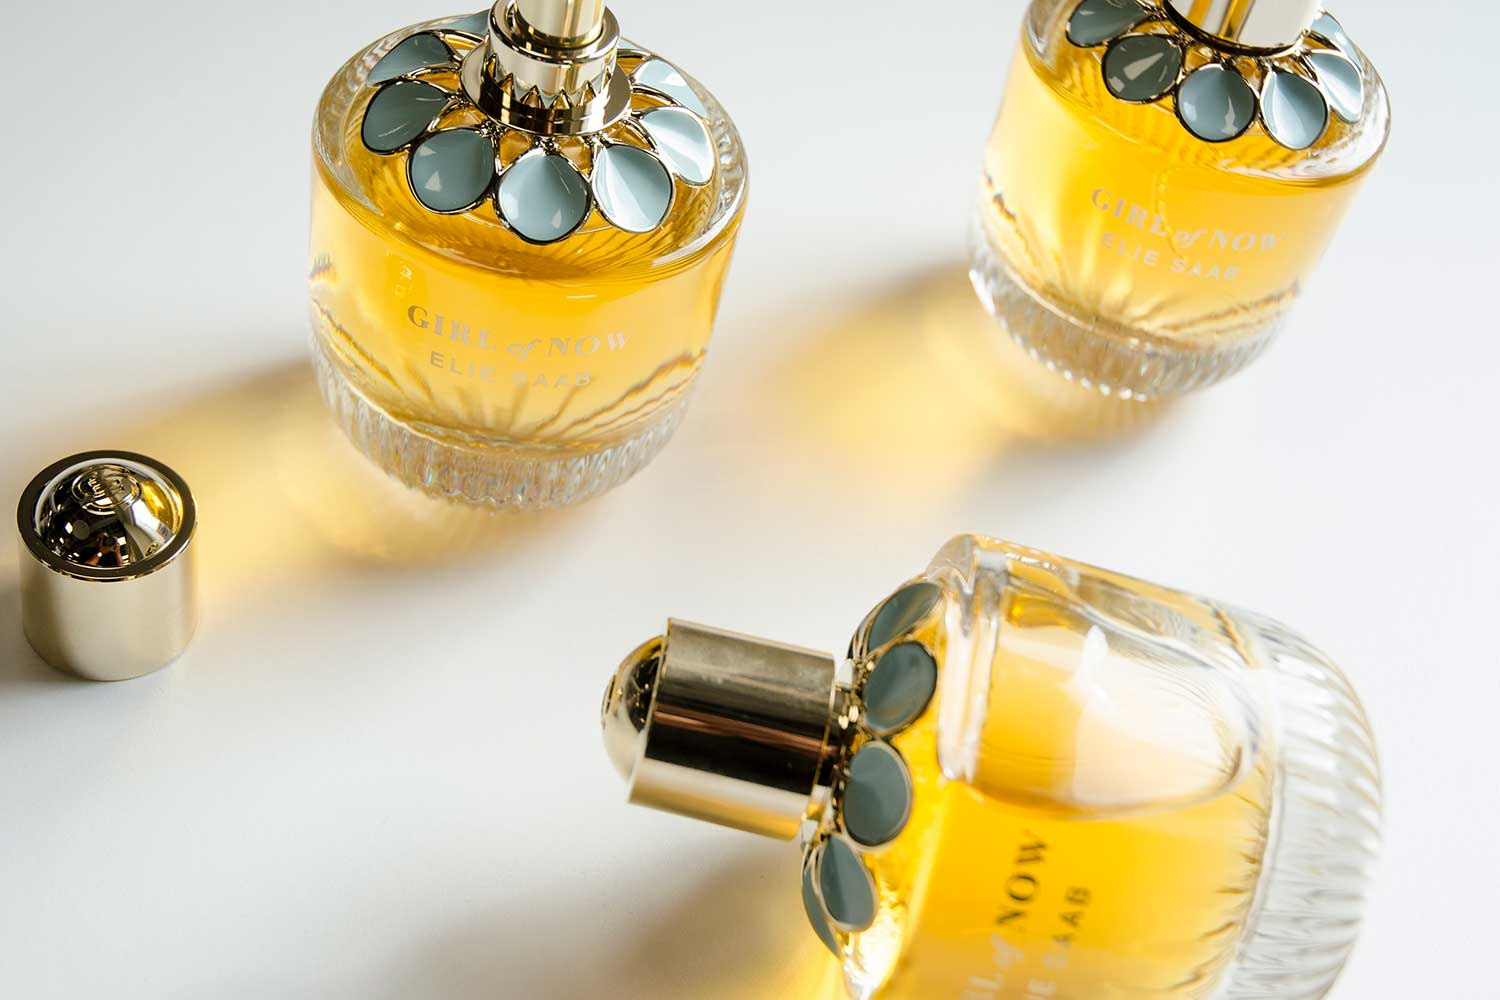 13 of the Best Perfumes You Can Buy at the Drugstore